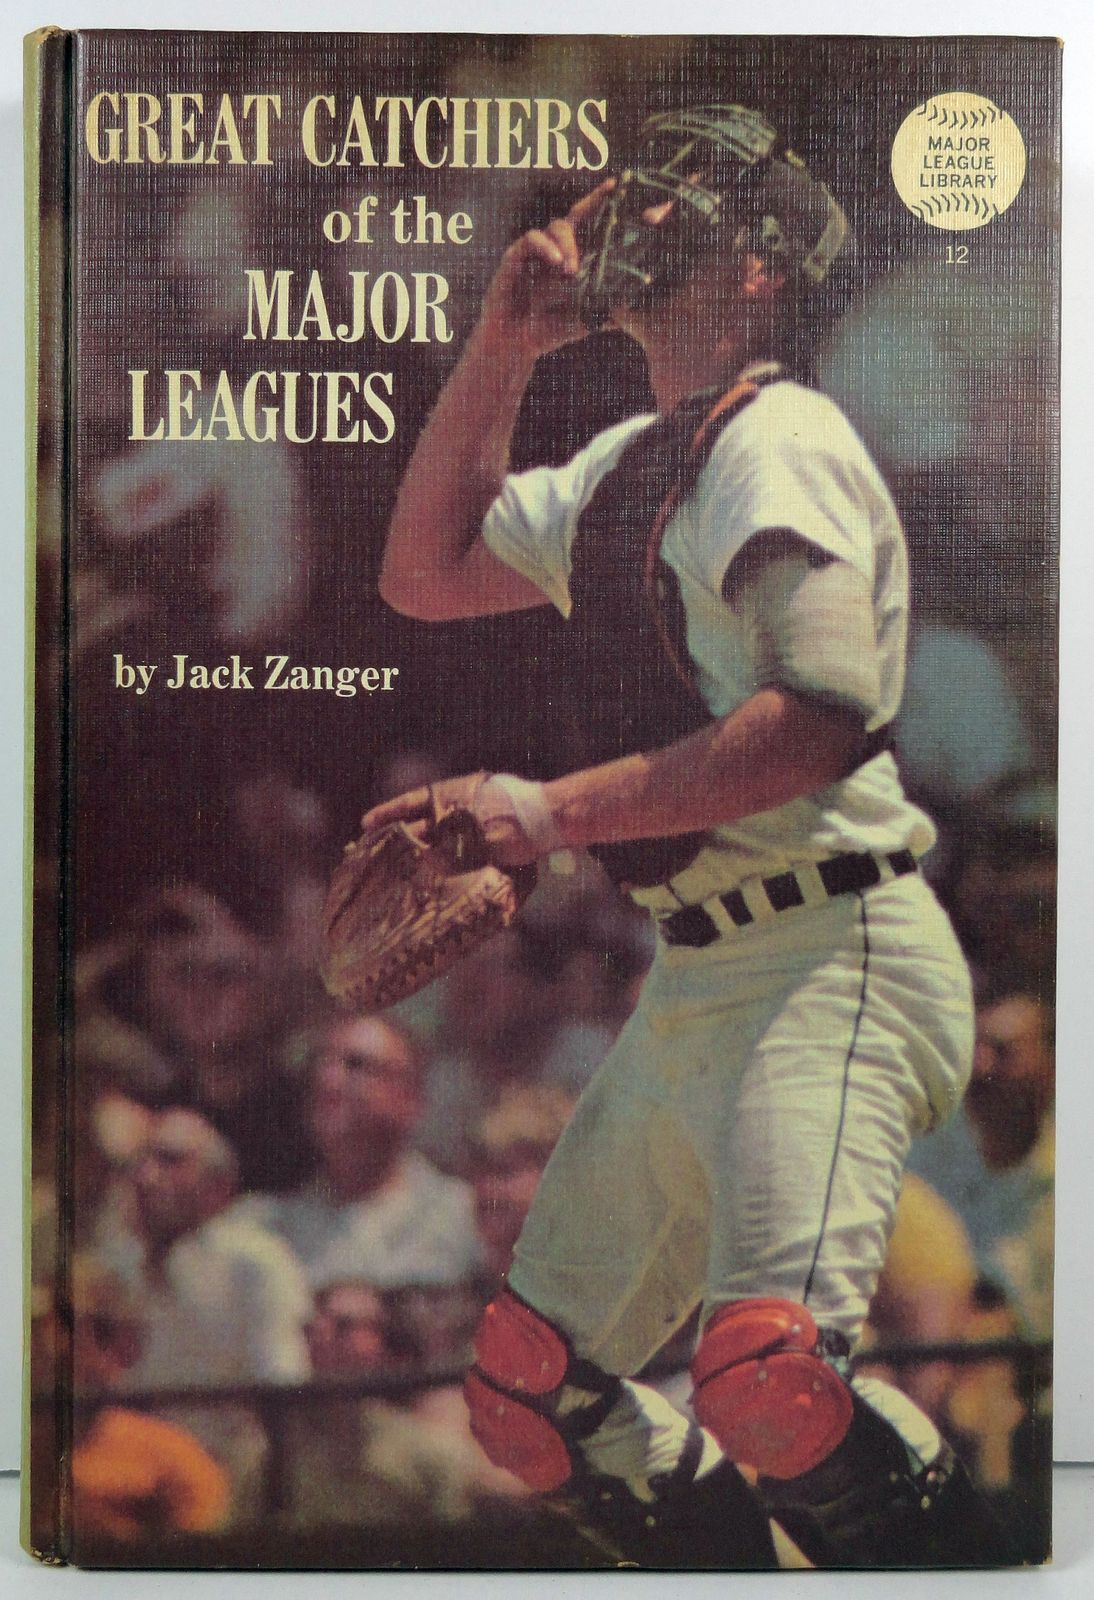 Great Catchers of the Major Leagues by Jack Zanger 1970